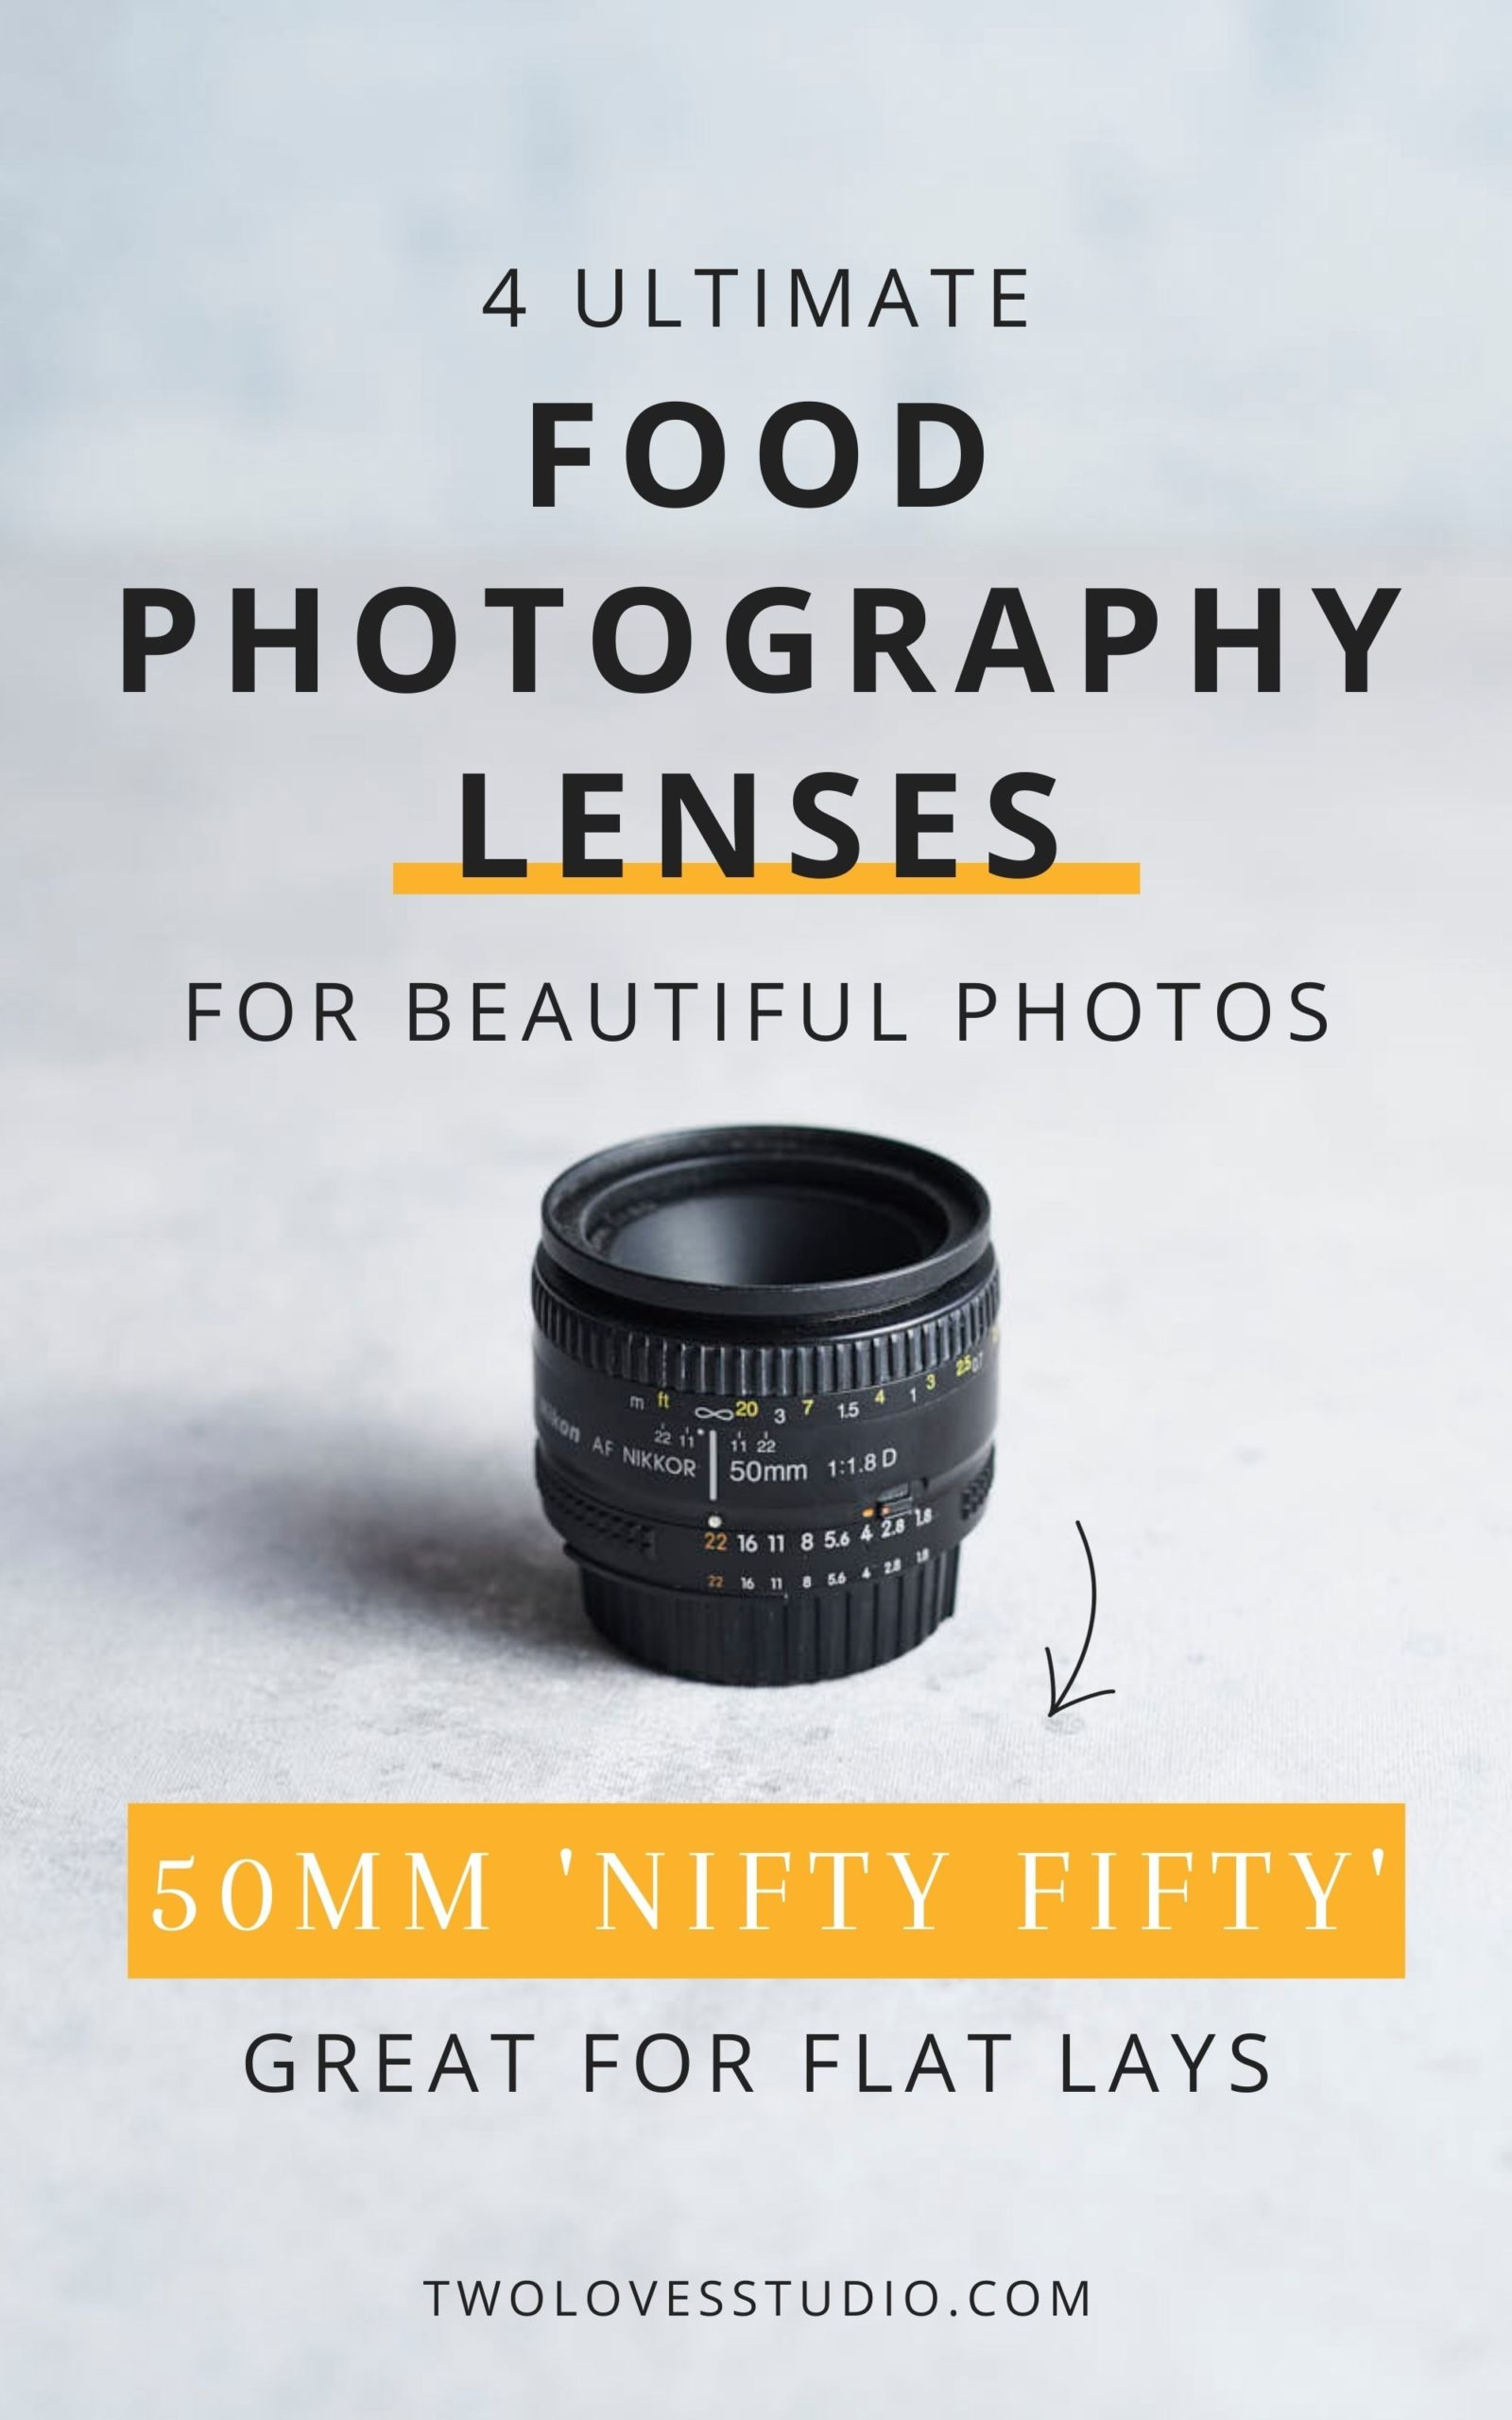 50 MM photography lense on a table.